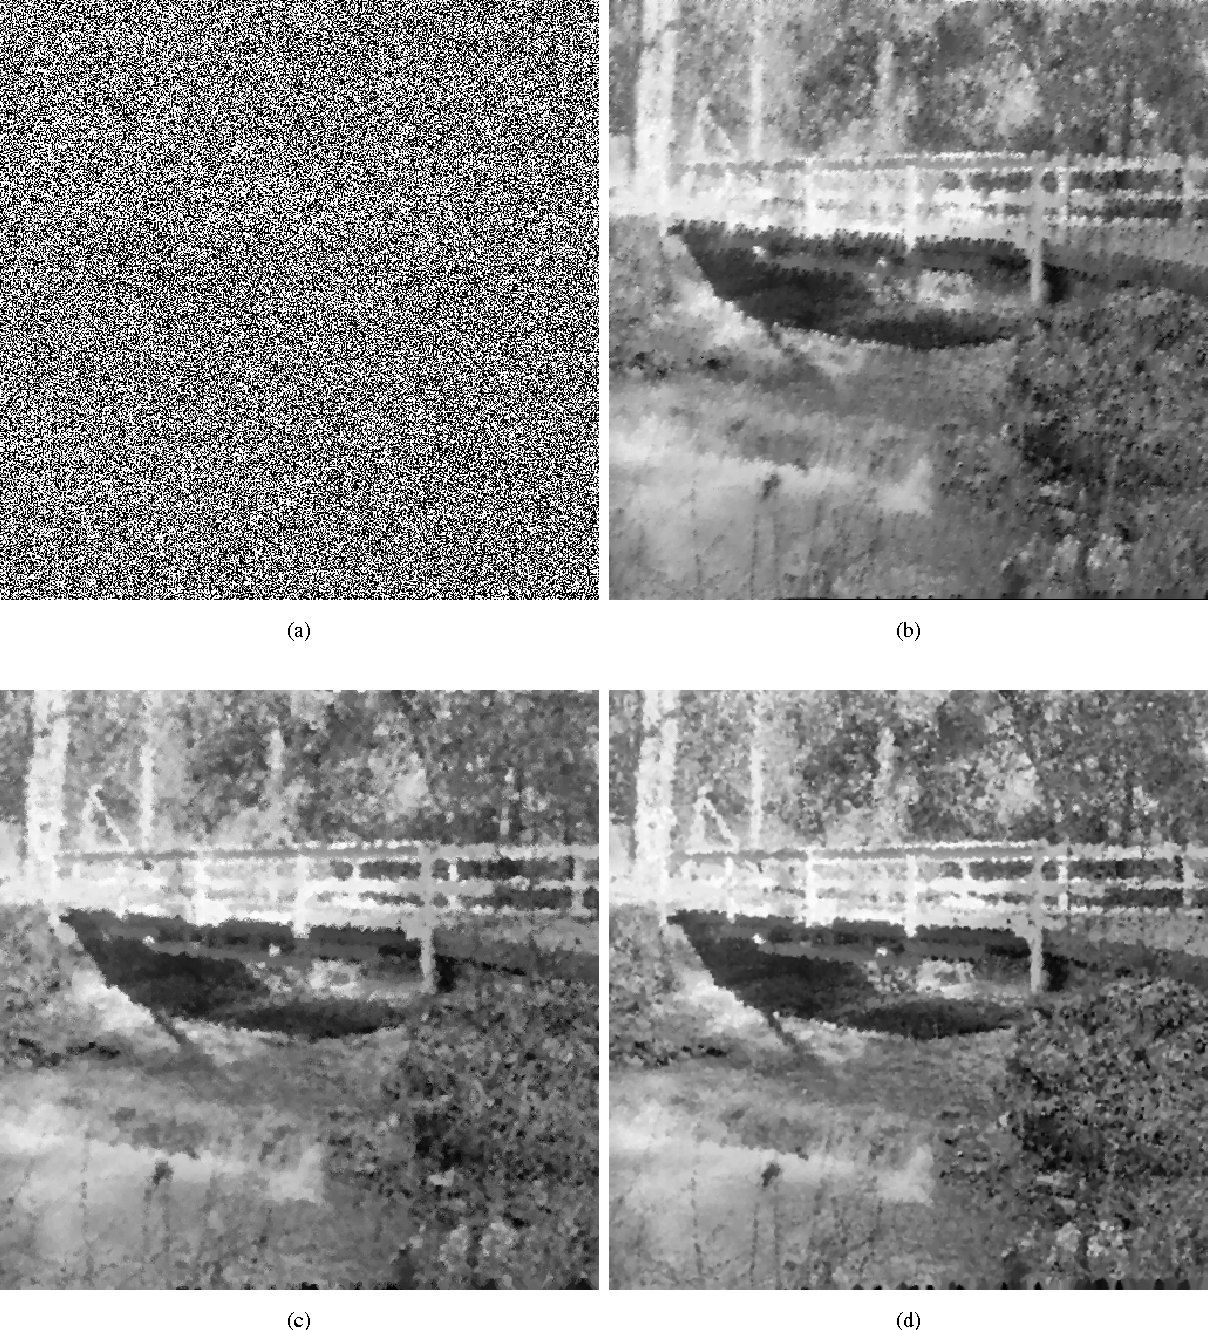 Figure 4 for Real-Time Impulse Noise Suppression from Images Using an Efficient Weighted-Average Filtering